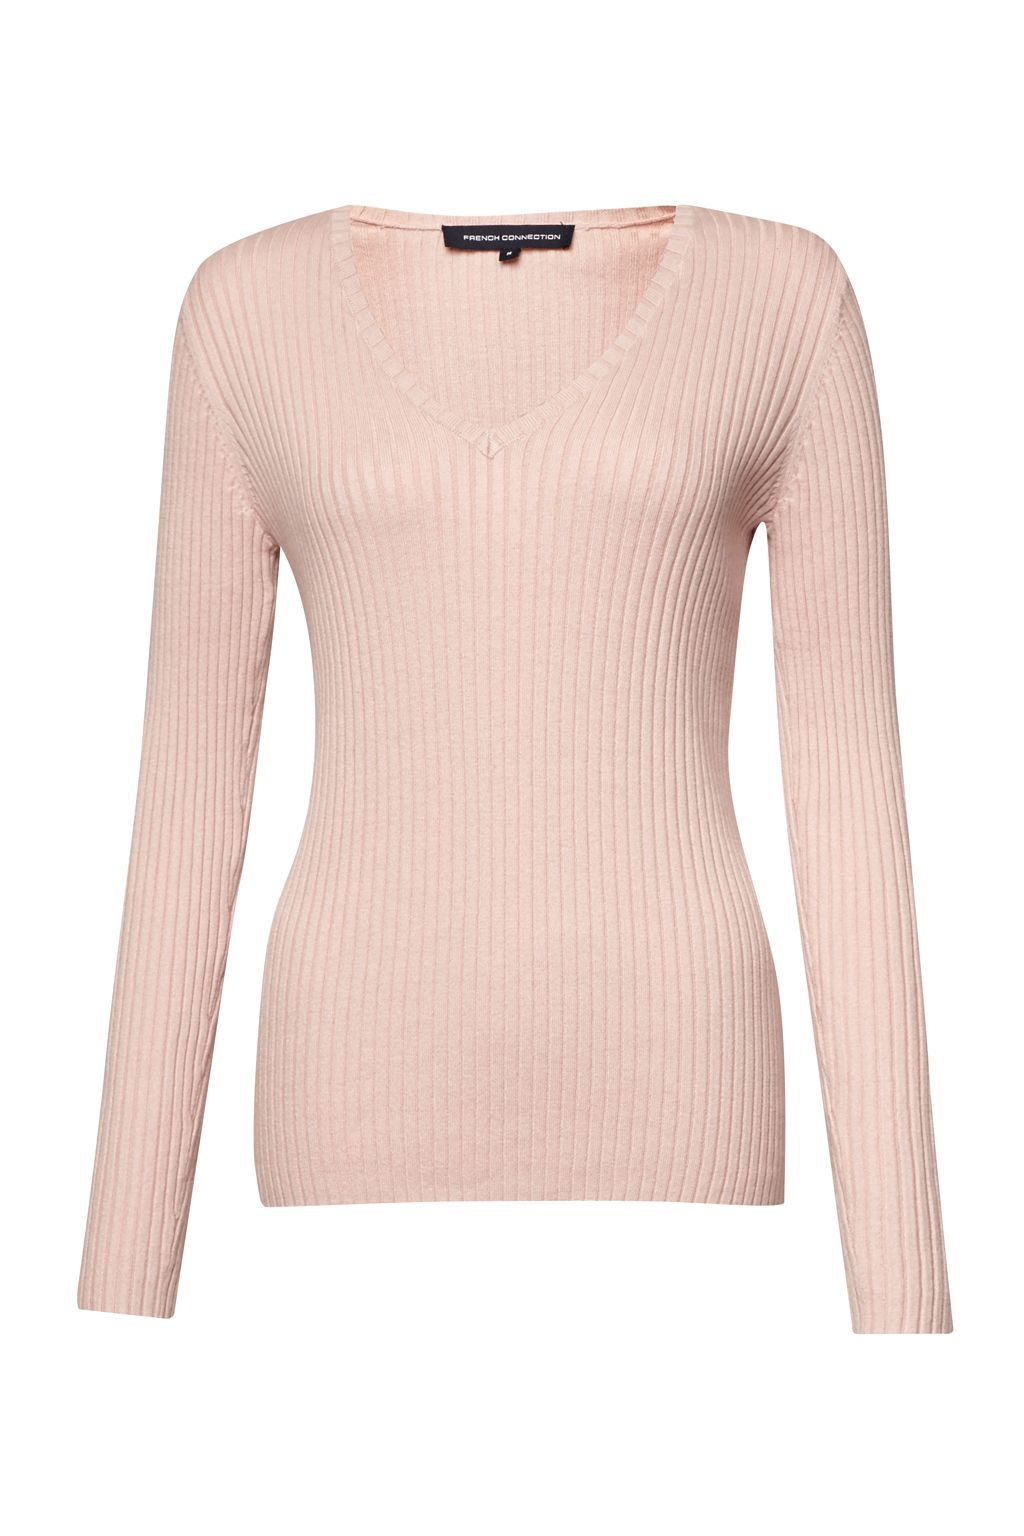 Bambino Rib V Neck Jumper, Pink - neckline: v-neck; pattern: plain; style: standard; predominant colour: blush; occasions: casual, work, creative work; length: standard; fibres: cotton - mix; fit: standard fit; sleeve length: long sleeve; sleeve style: standard; texture group: knits/crochet; pattern type: knitted - fine stitch; pattern size: light/subtle; wardrobe: basic; season: a/w 2016